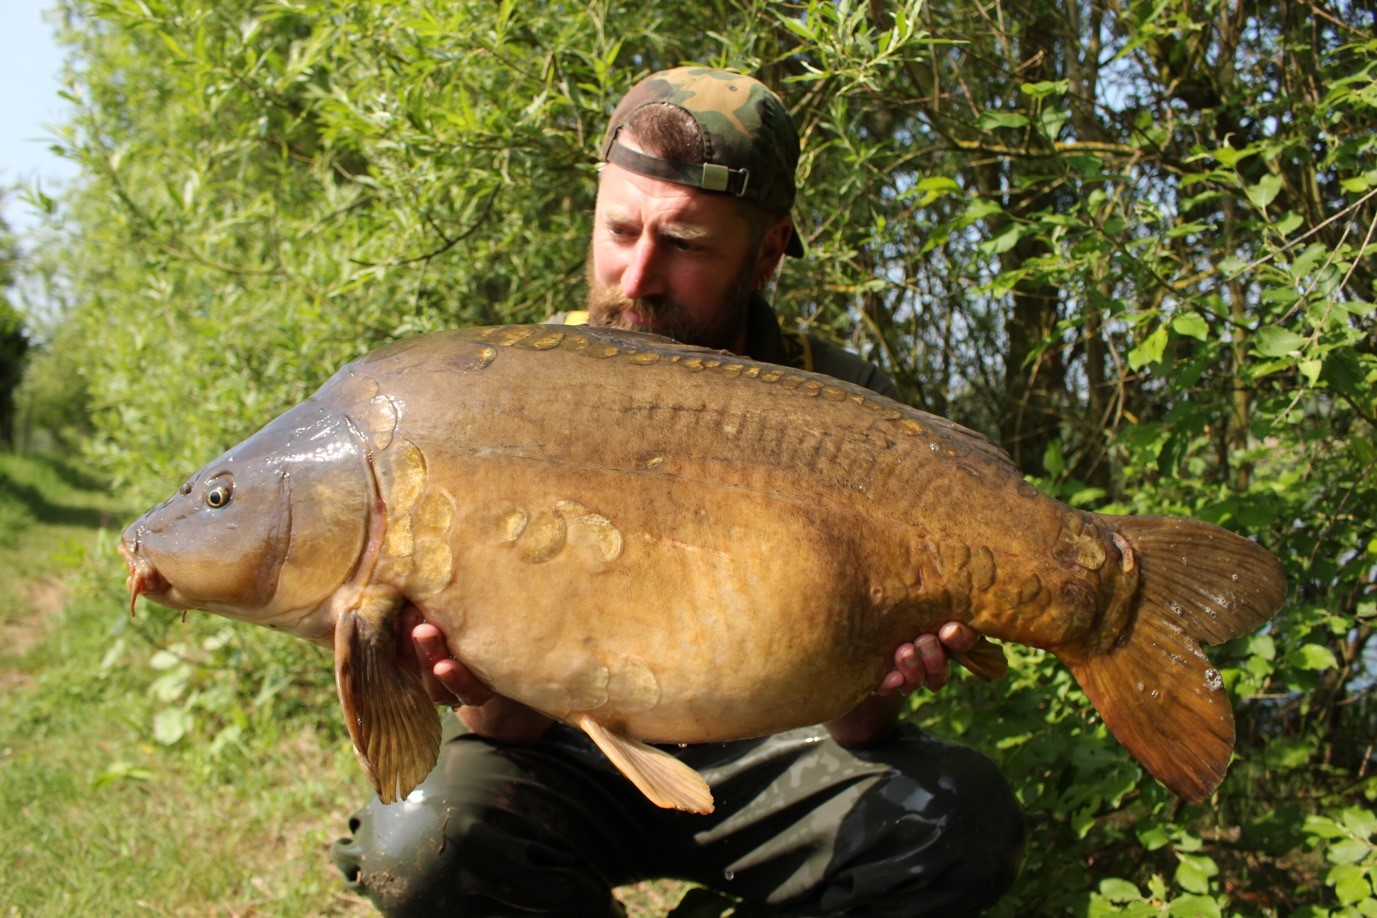 Cleverly Fisheries Top Lake Carp The Lady